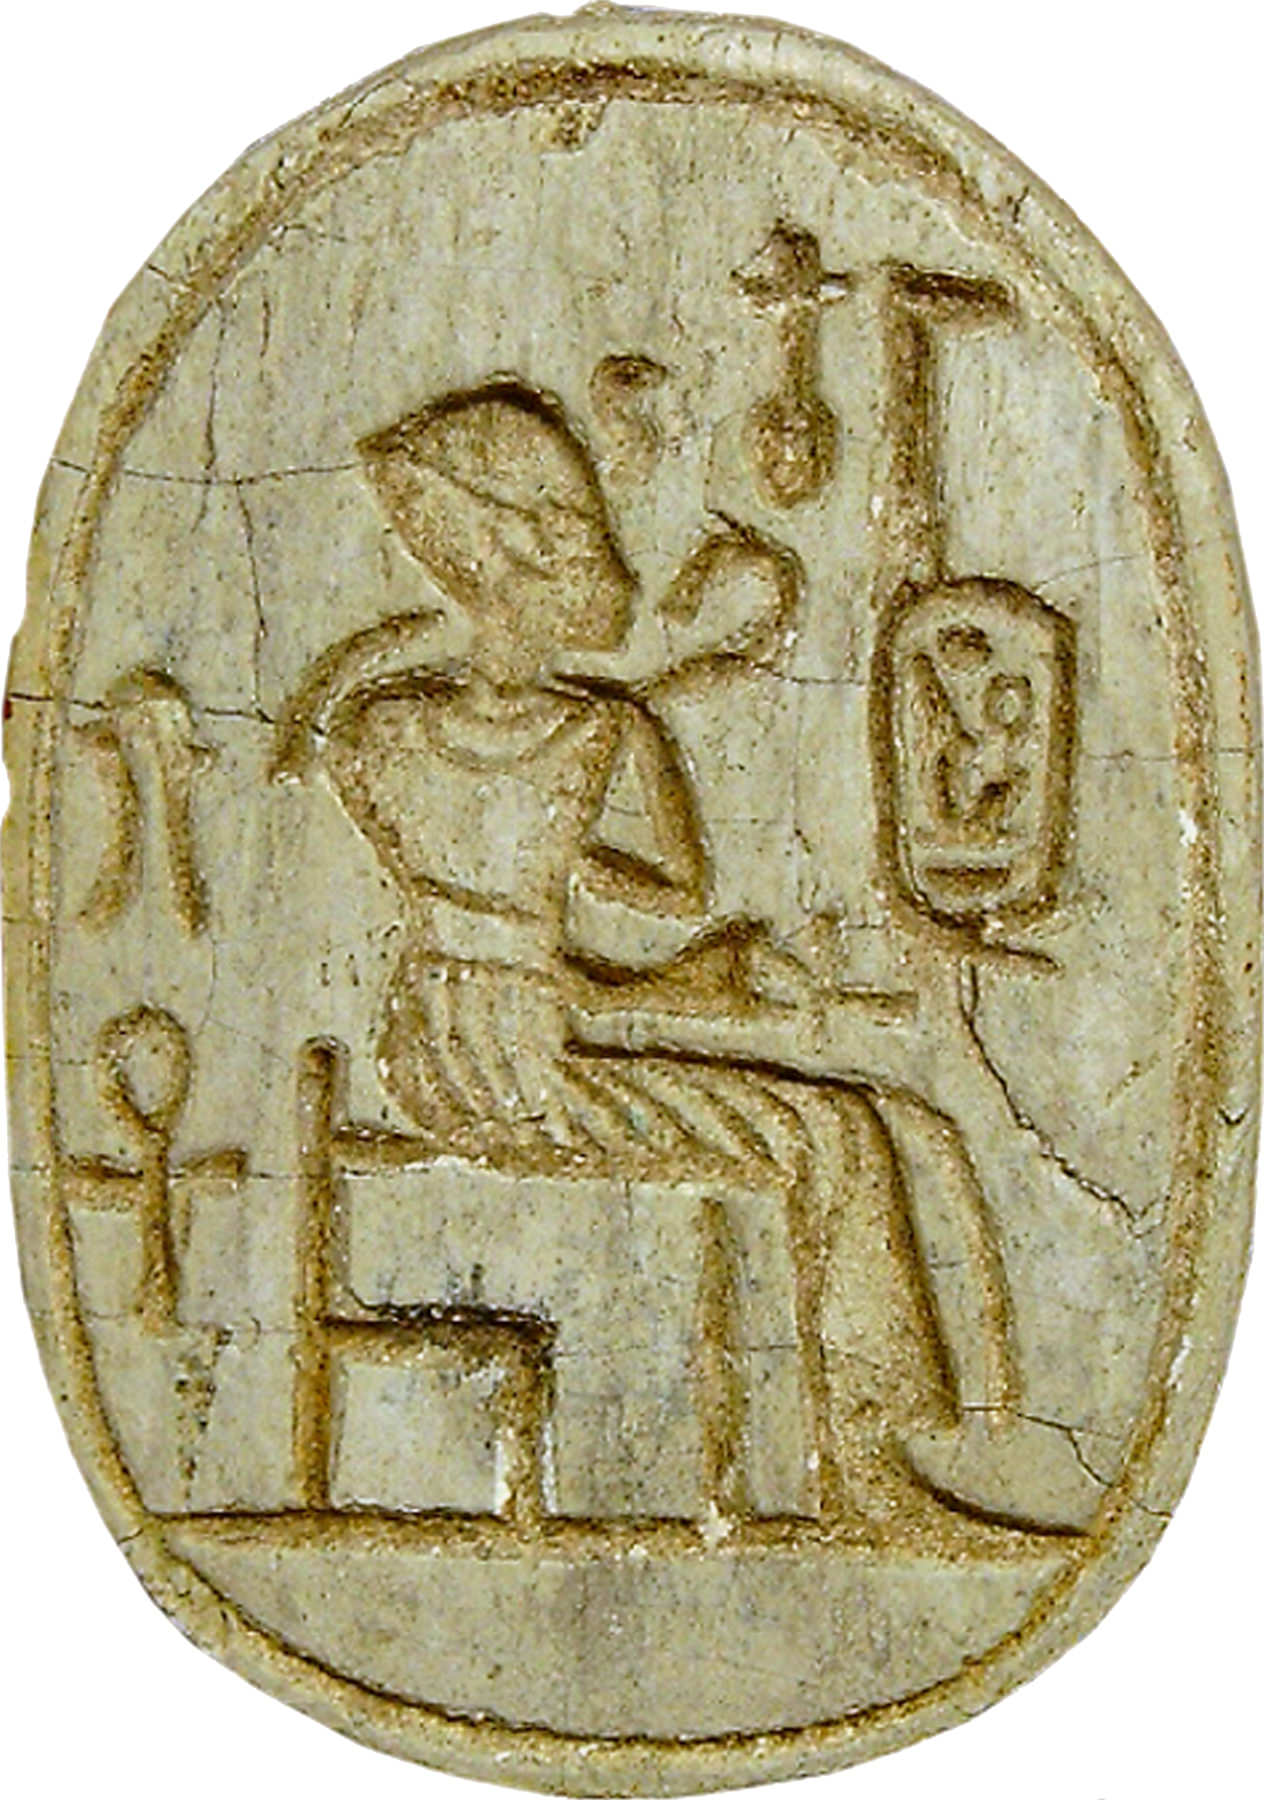 The ankh ancient history encyclopedia during the amarna period 1353 1336 bce when akhenaten banned the cult of amun along with the rest of the gods and raised the god aten as the sole god biocorpaavc